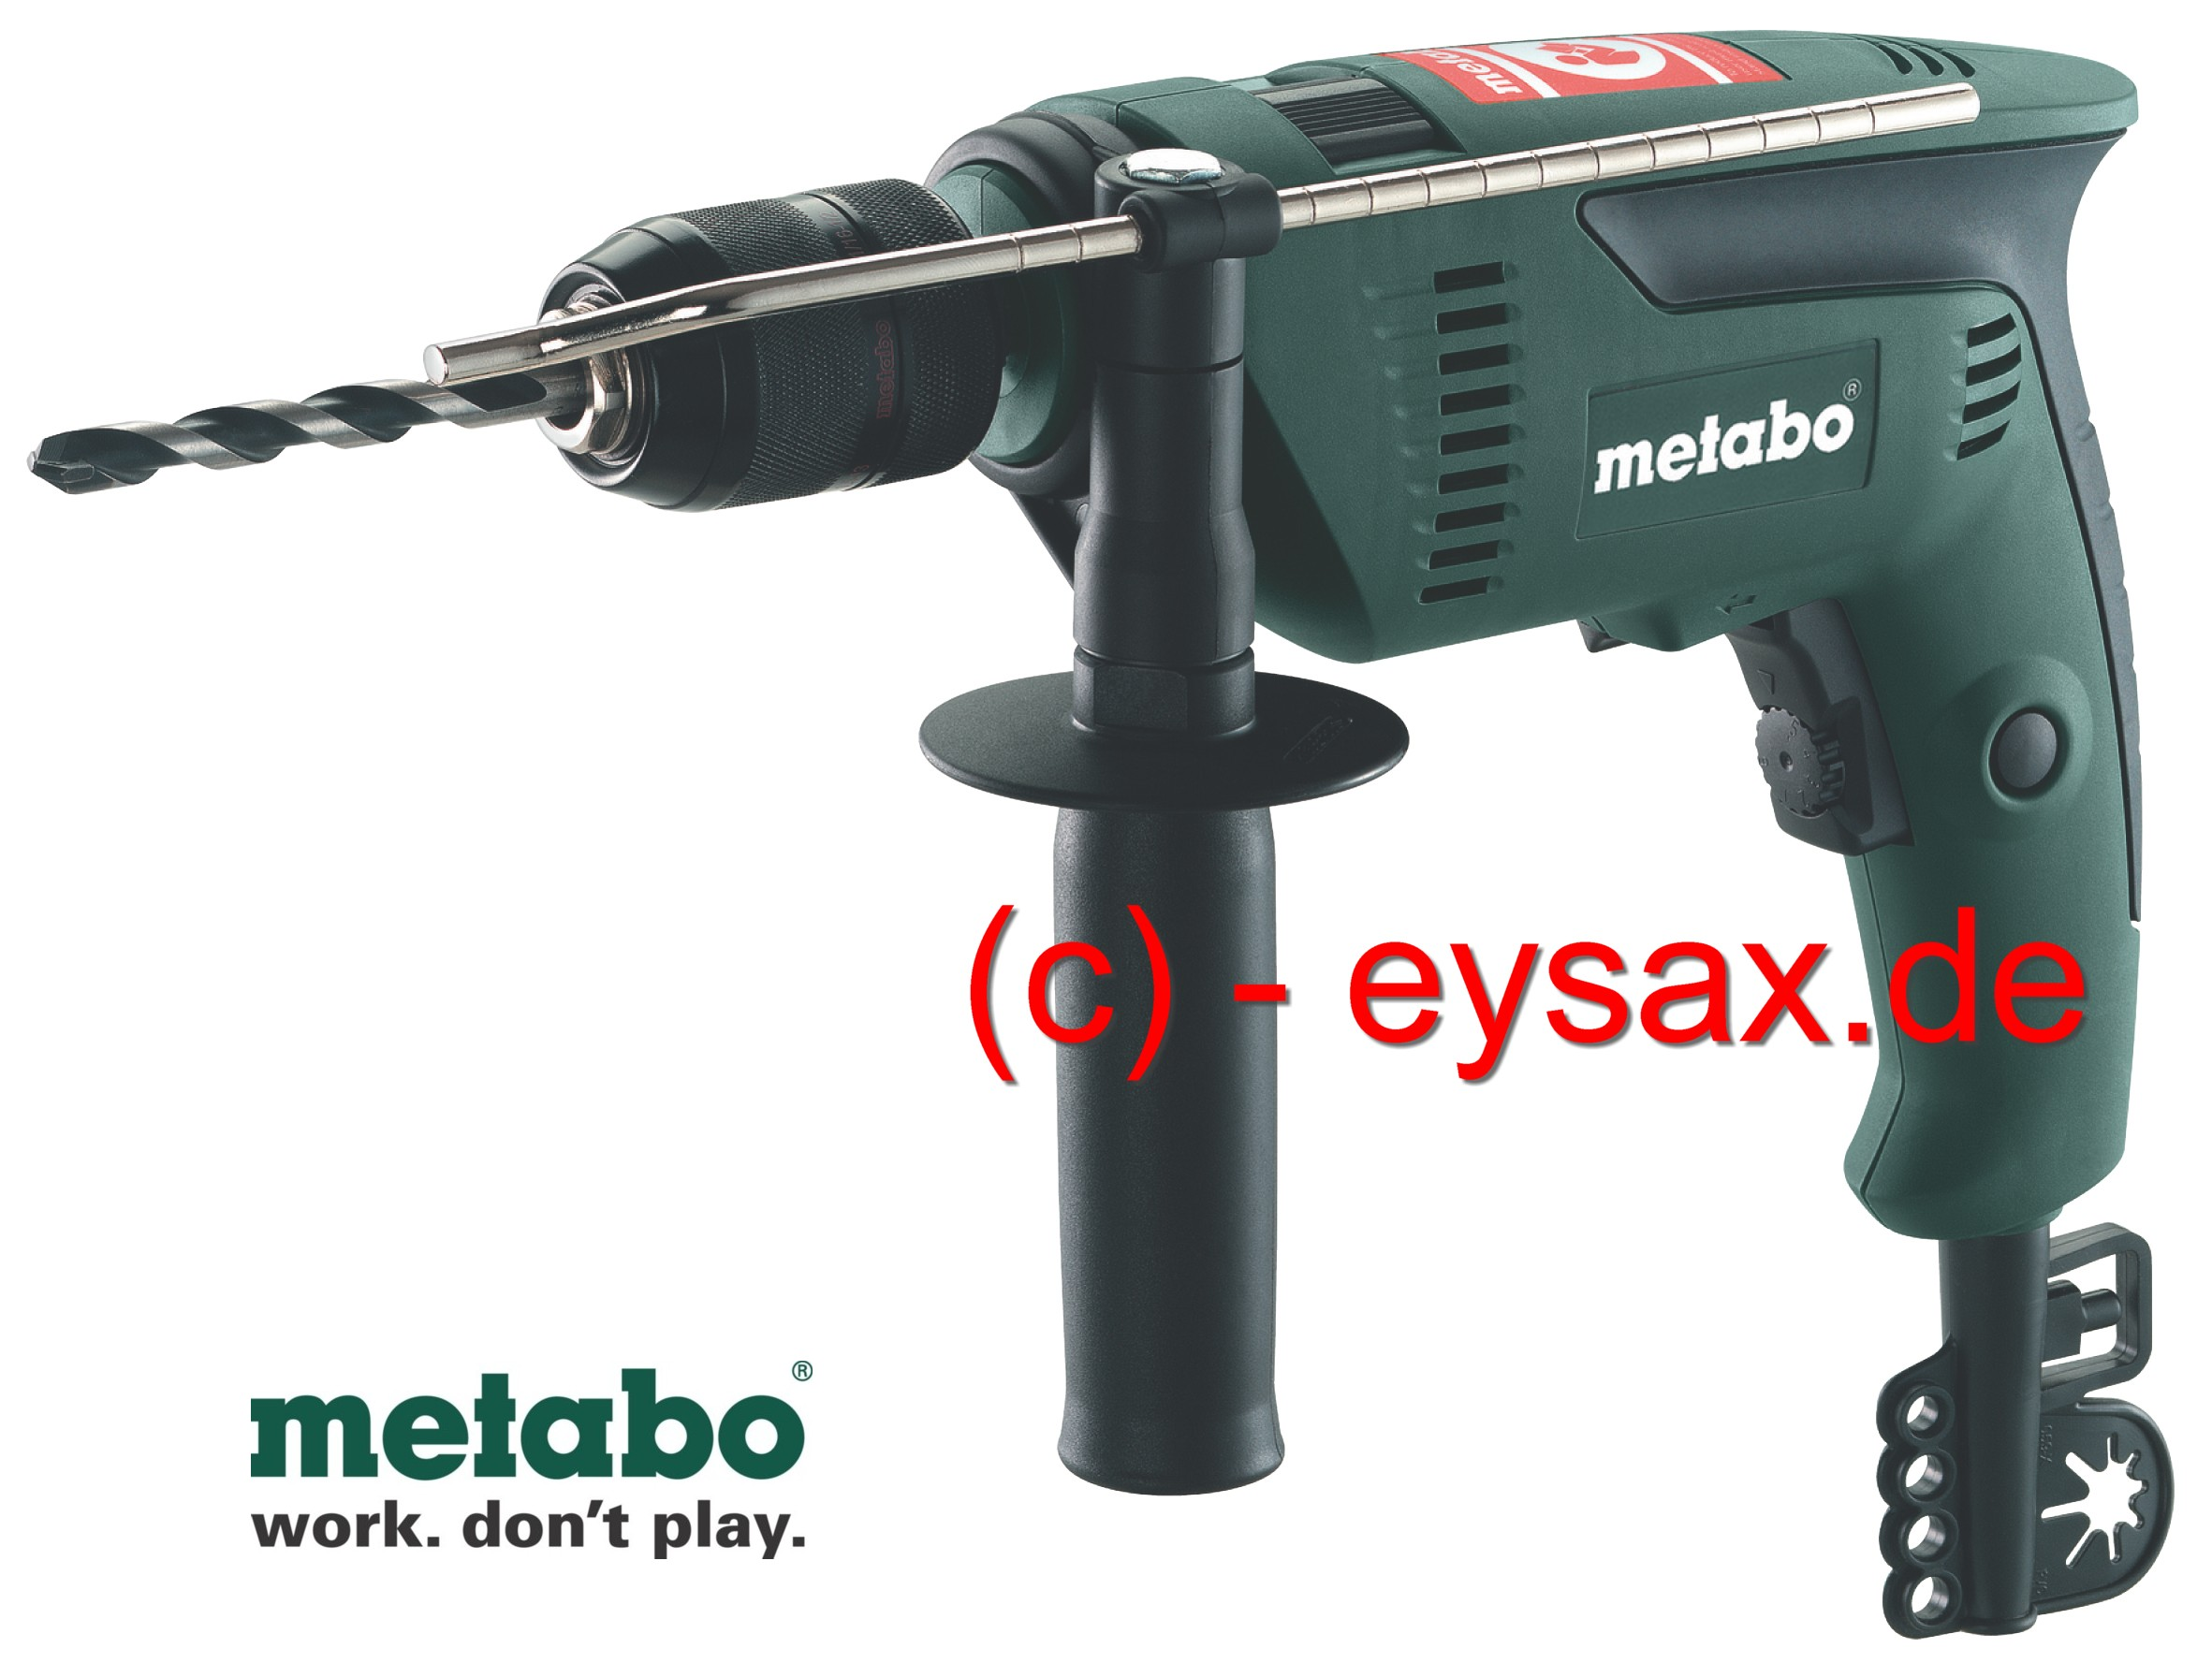 metabo 600 watt elektronik schlagbohrmaschine bohrmaschine sbe 600 r l ebay. Black Bedroom Furniture Sets. Home Design Ideas